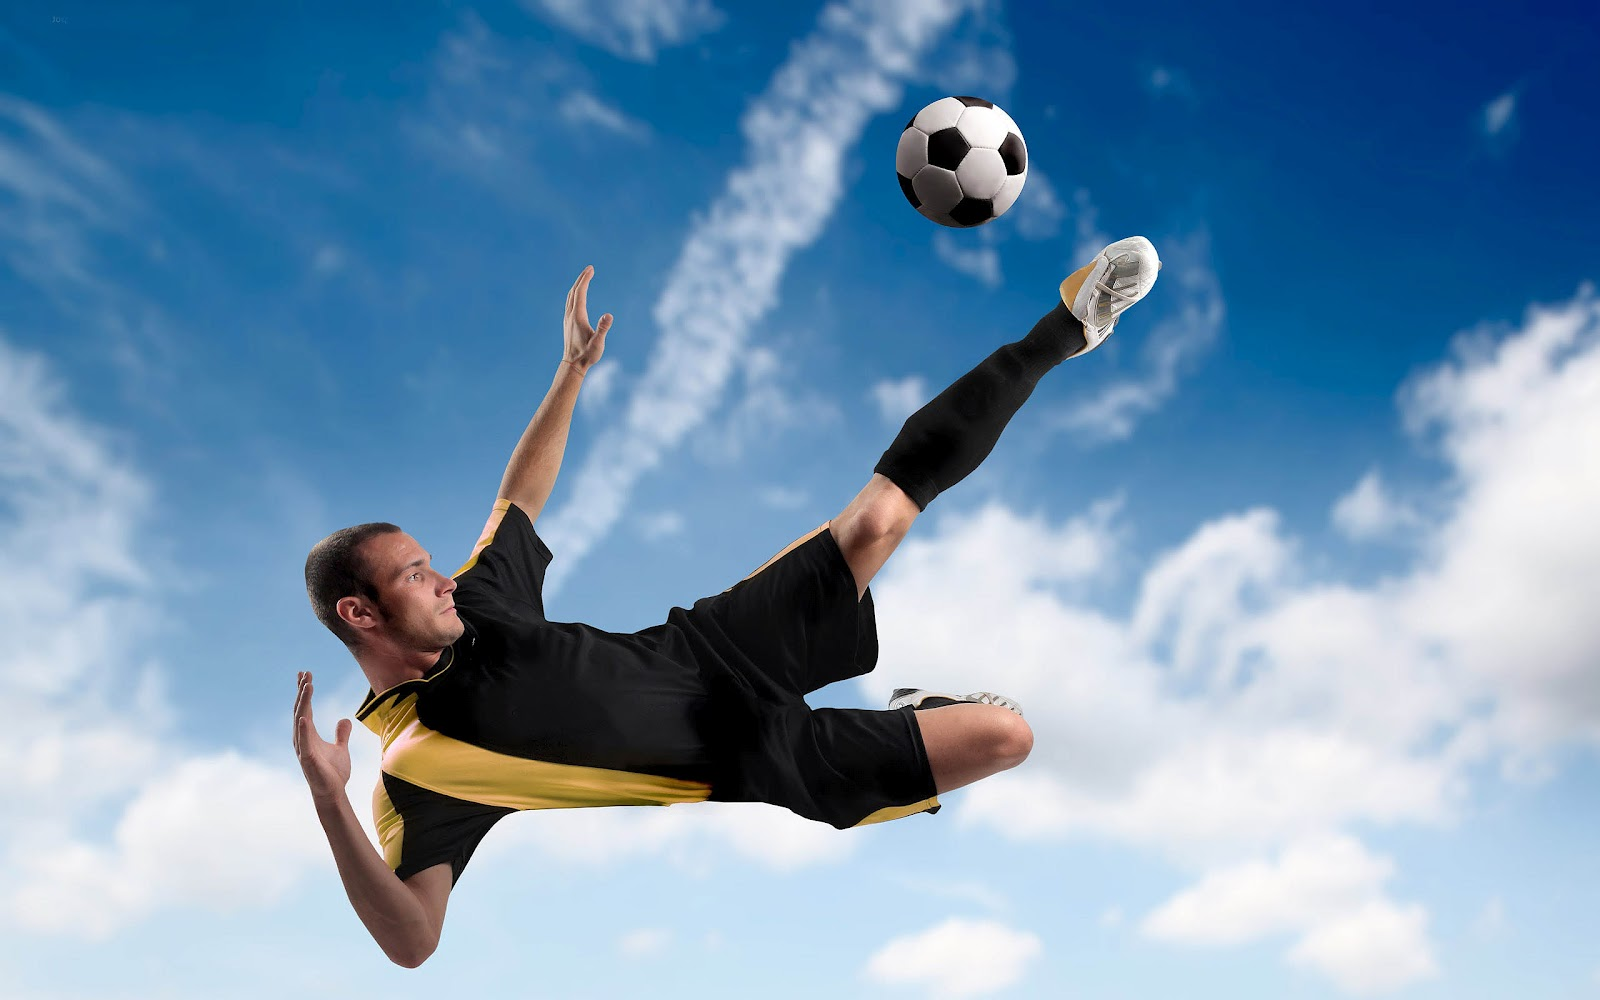 Soccer Wallpapers For Laptop Download Hd Wallpaper